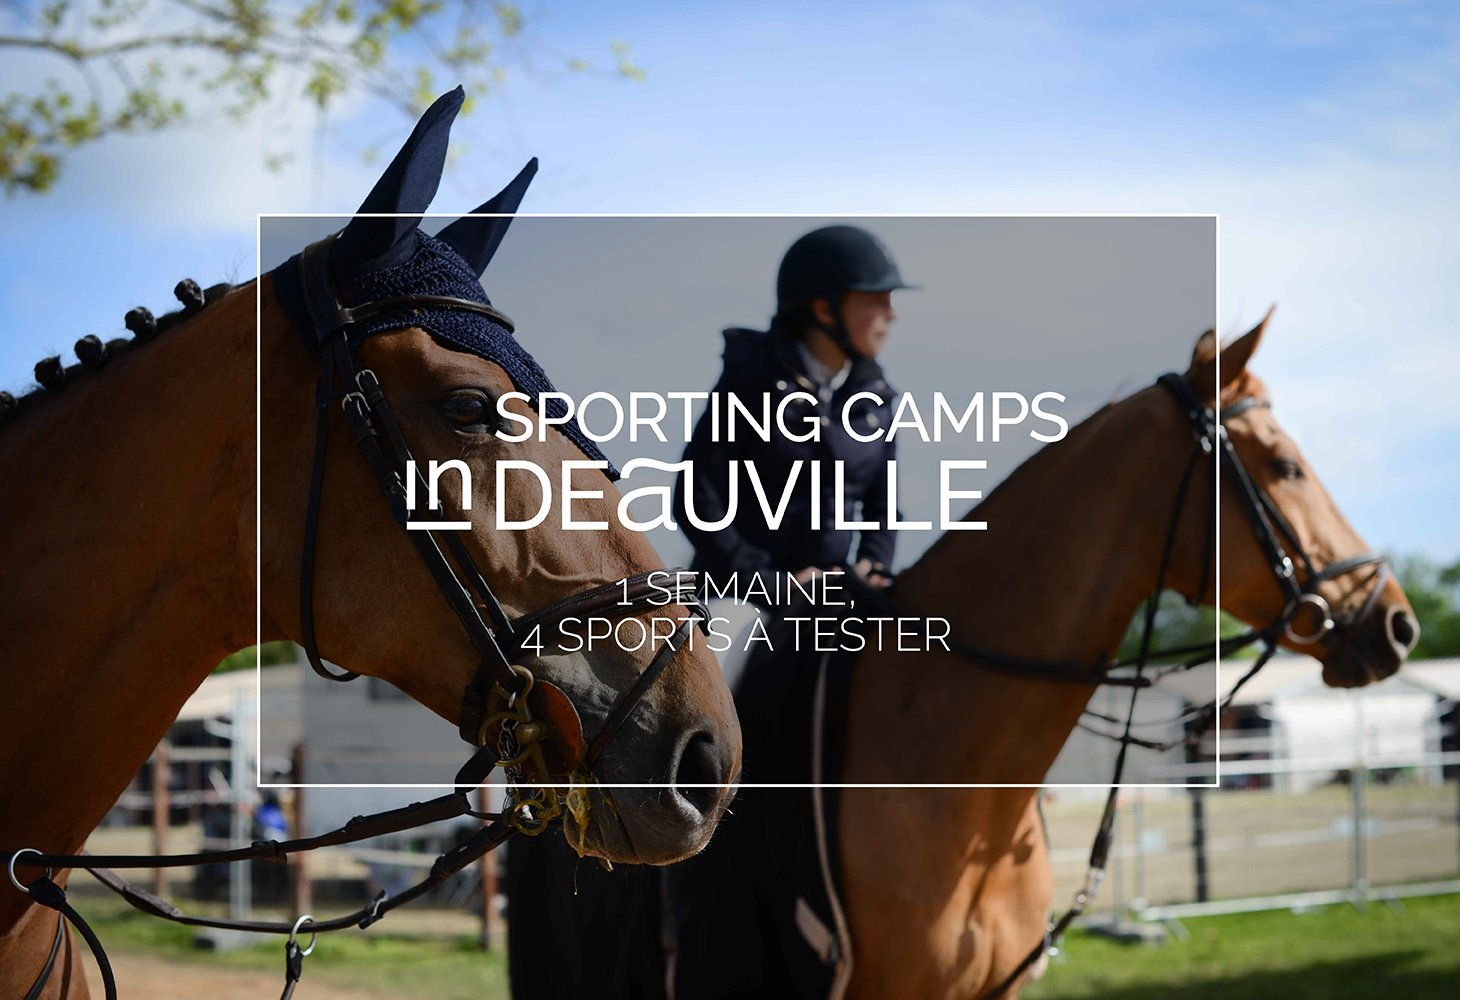 Visuelle Sportcamps in Deauville